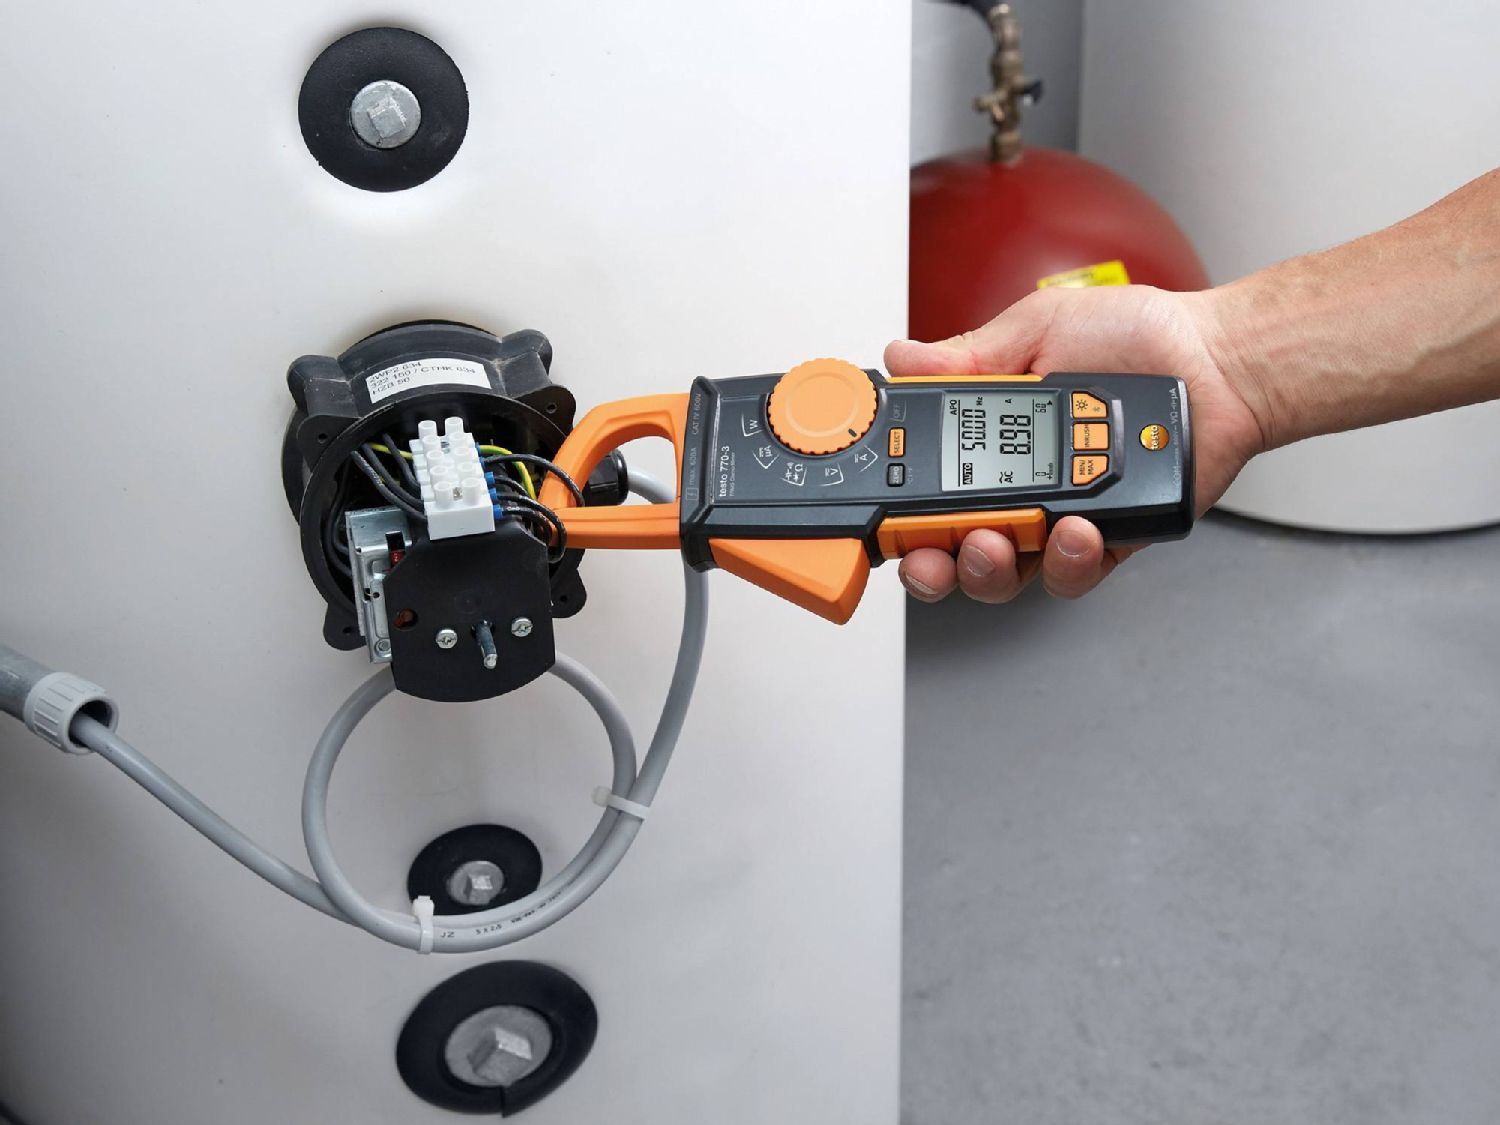 Test electrical installations with clamp meters